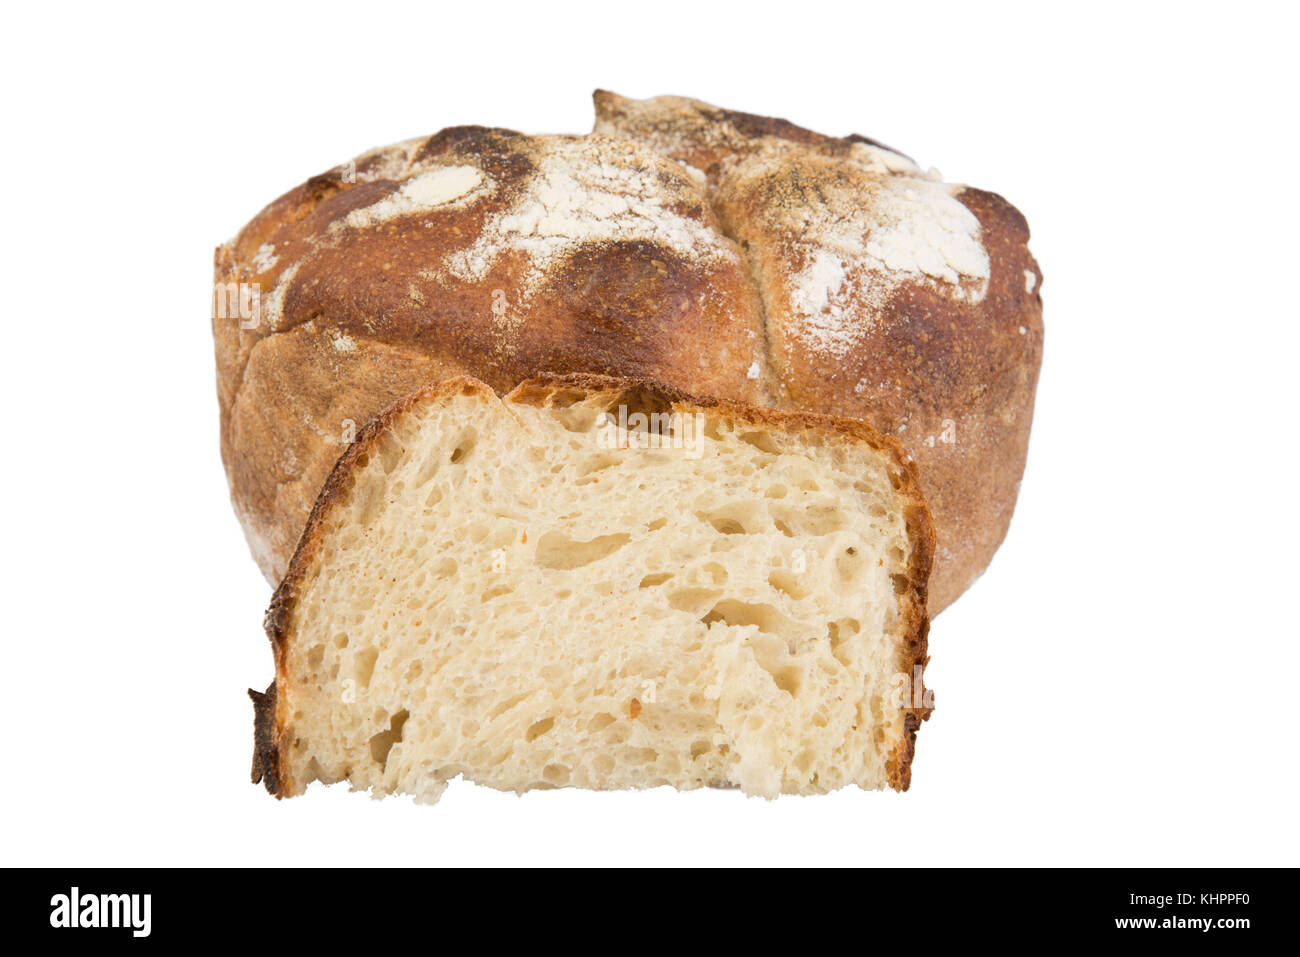 A fresh baked loaf of round artisan sour dough bread on isolated background. - Stock Image